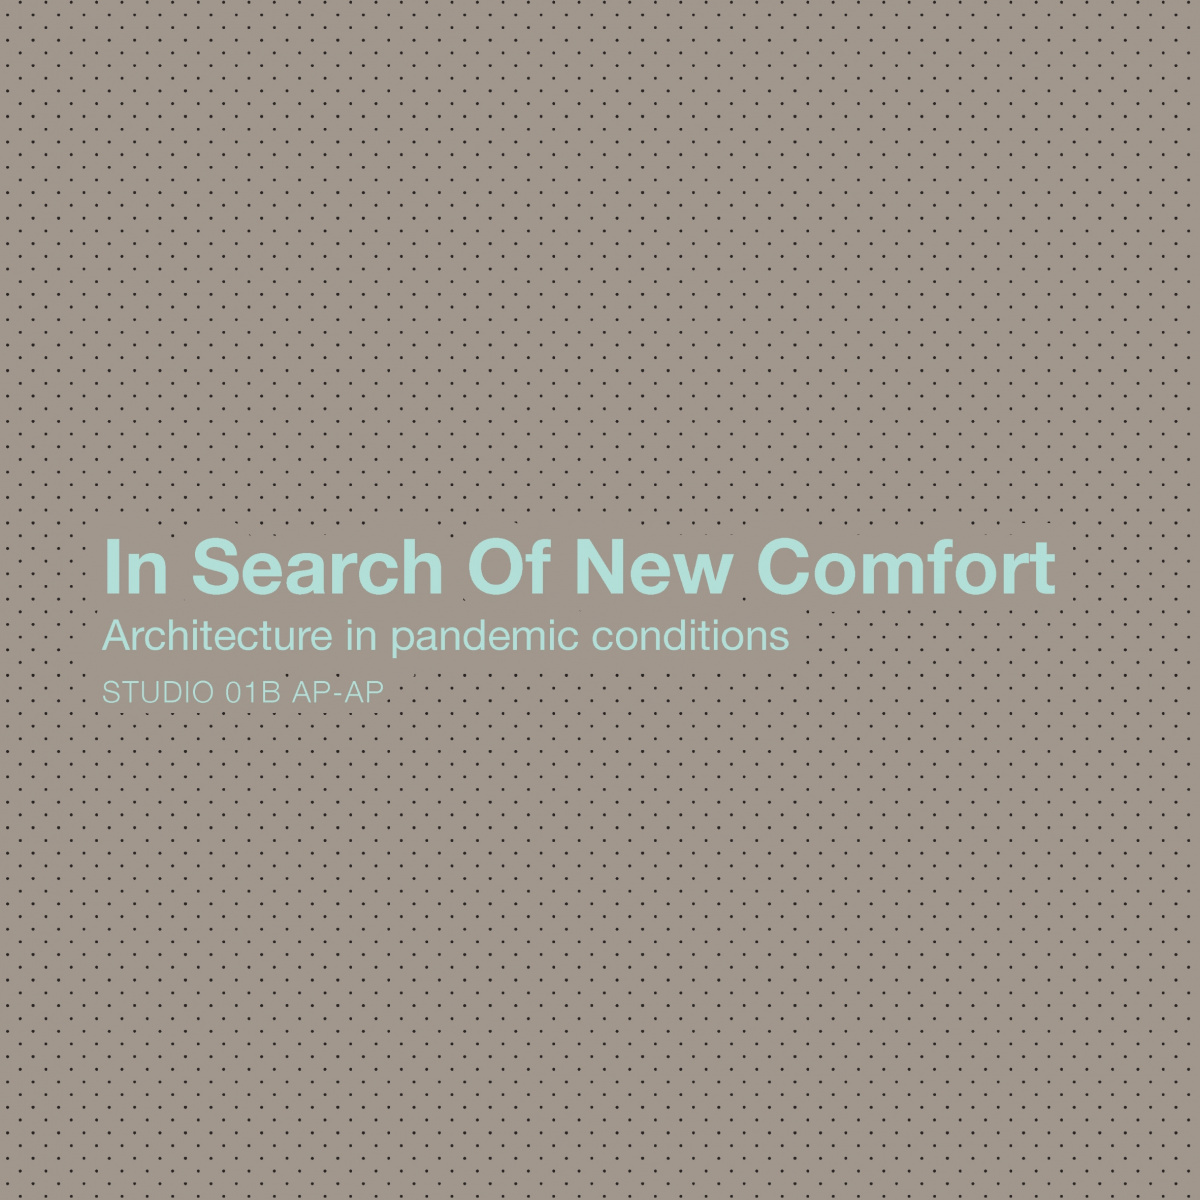 IN SEARCH OF NEW COMFORT ARCHITECTURE: Architecture in pandemic conditions